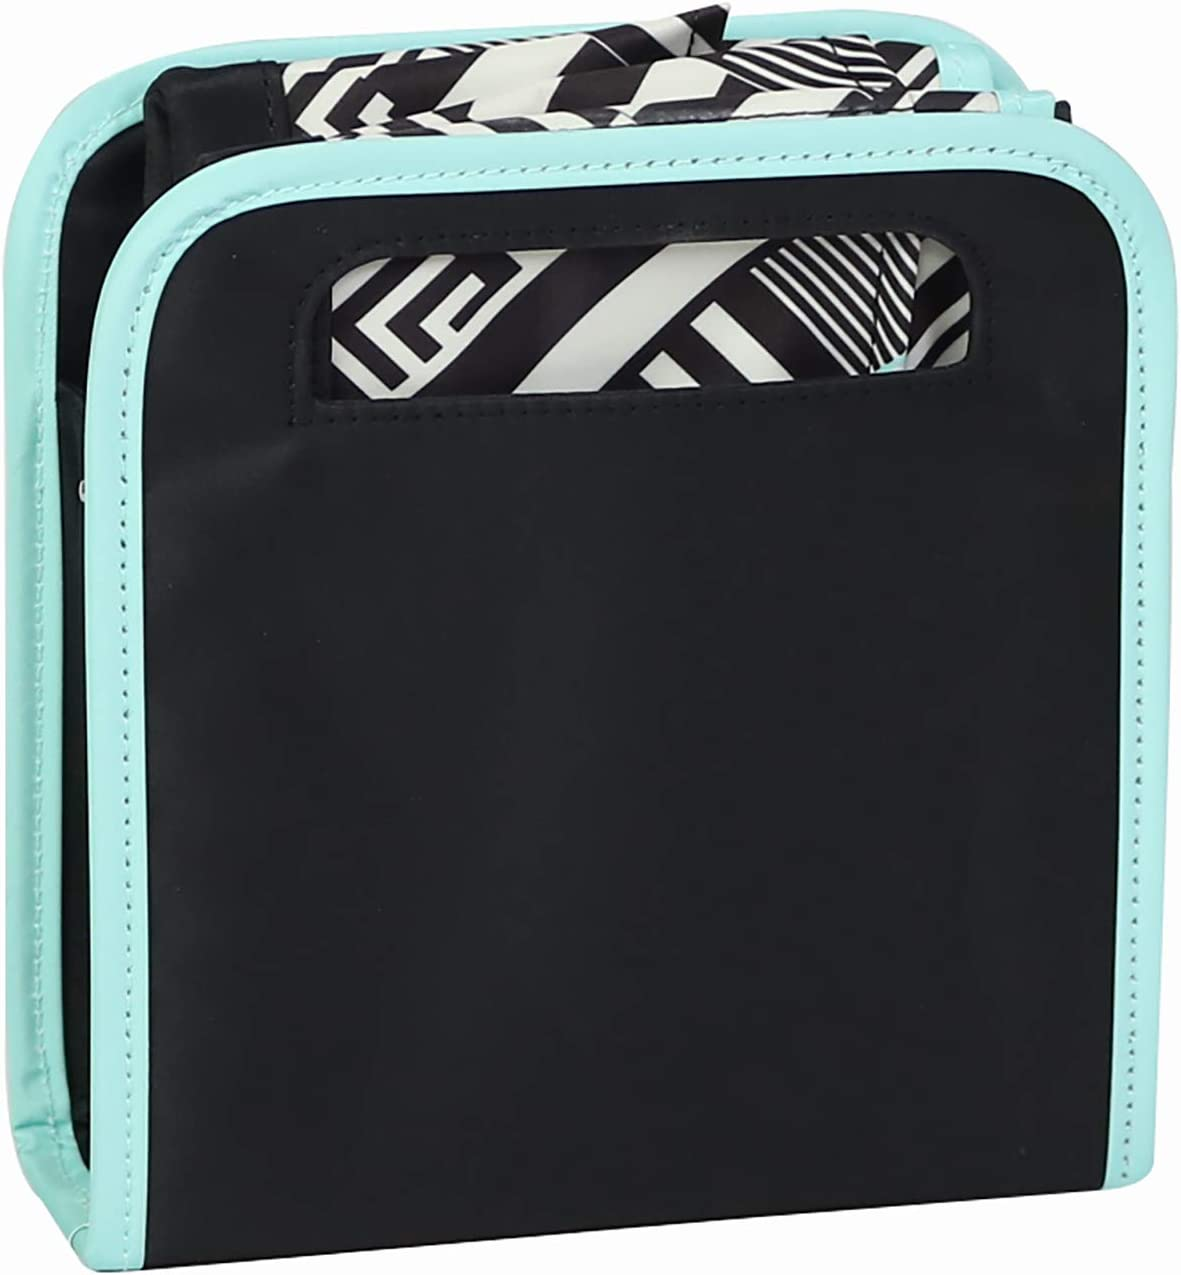 Art Storage for Supplies /& Crafts Supply Organizers Tote for School Classroom Organization for Makeup /& Nurses Office Teal Everything Mary Collapsible Craft Caddy and Home